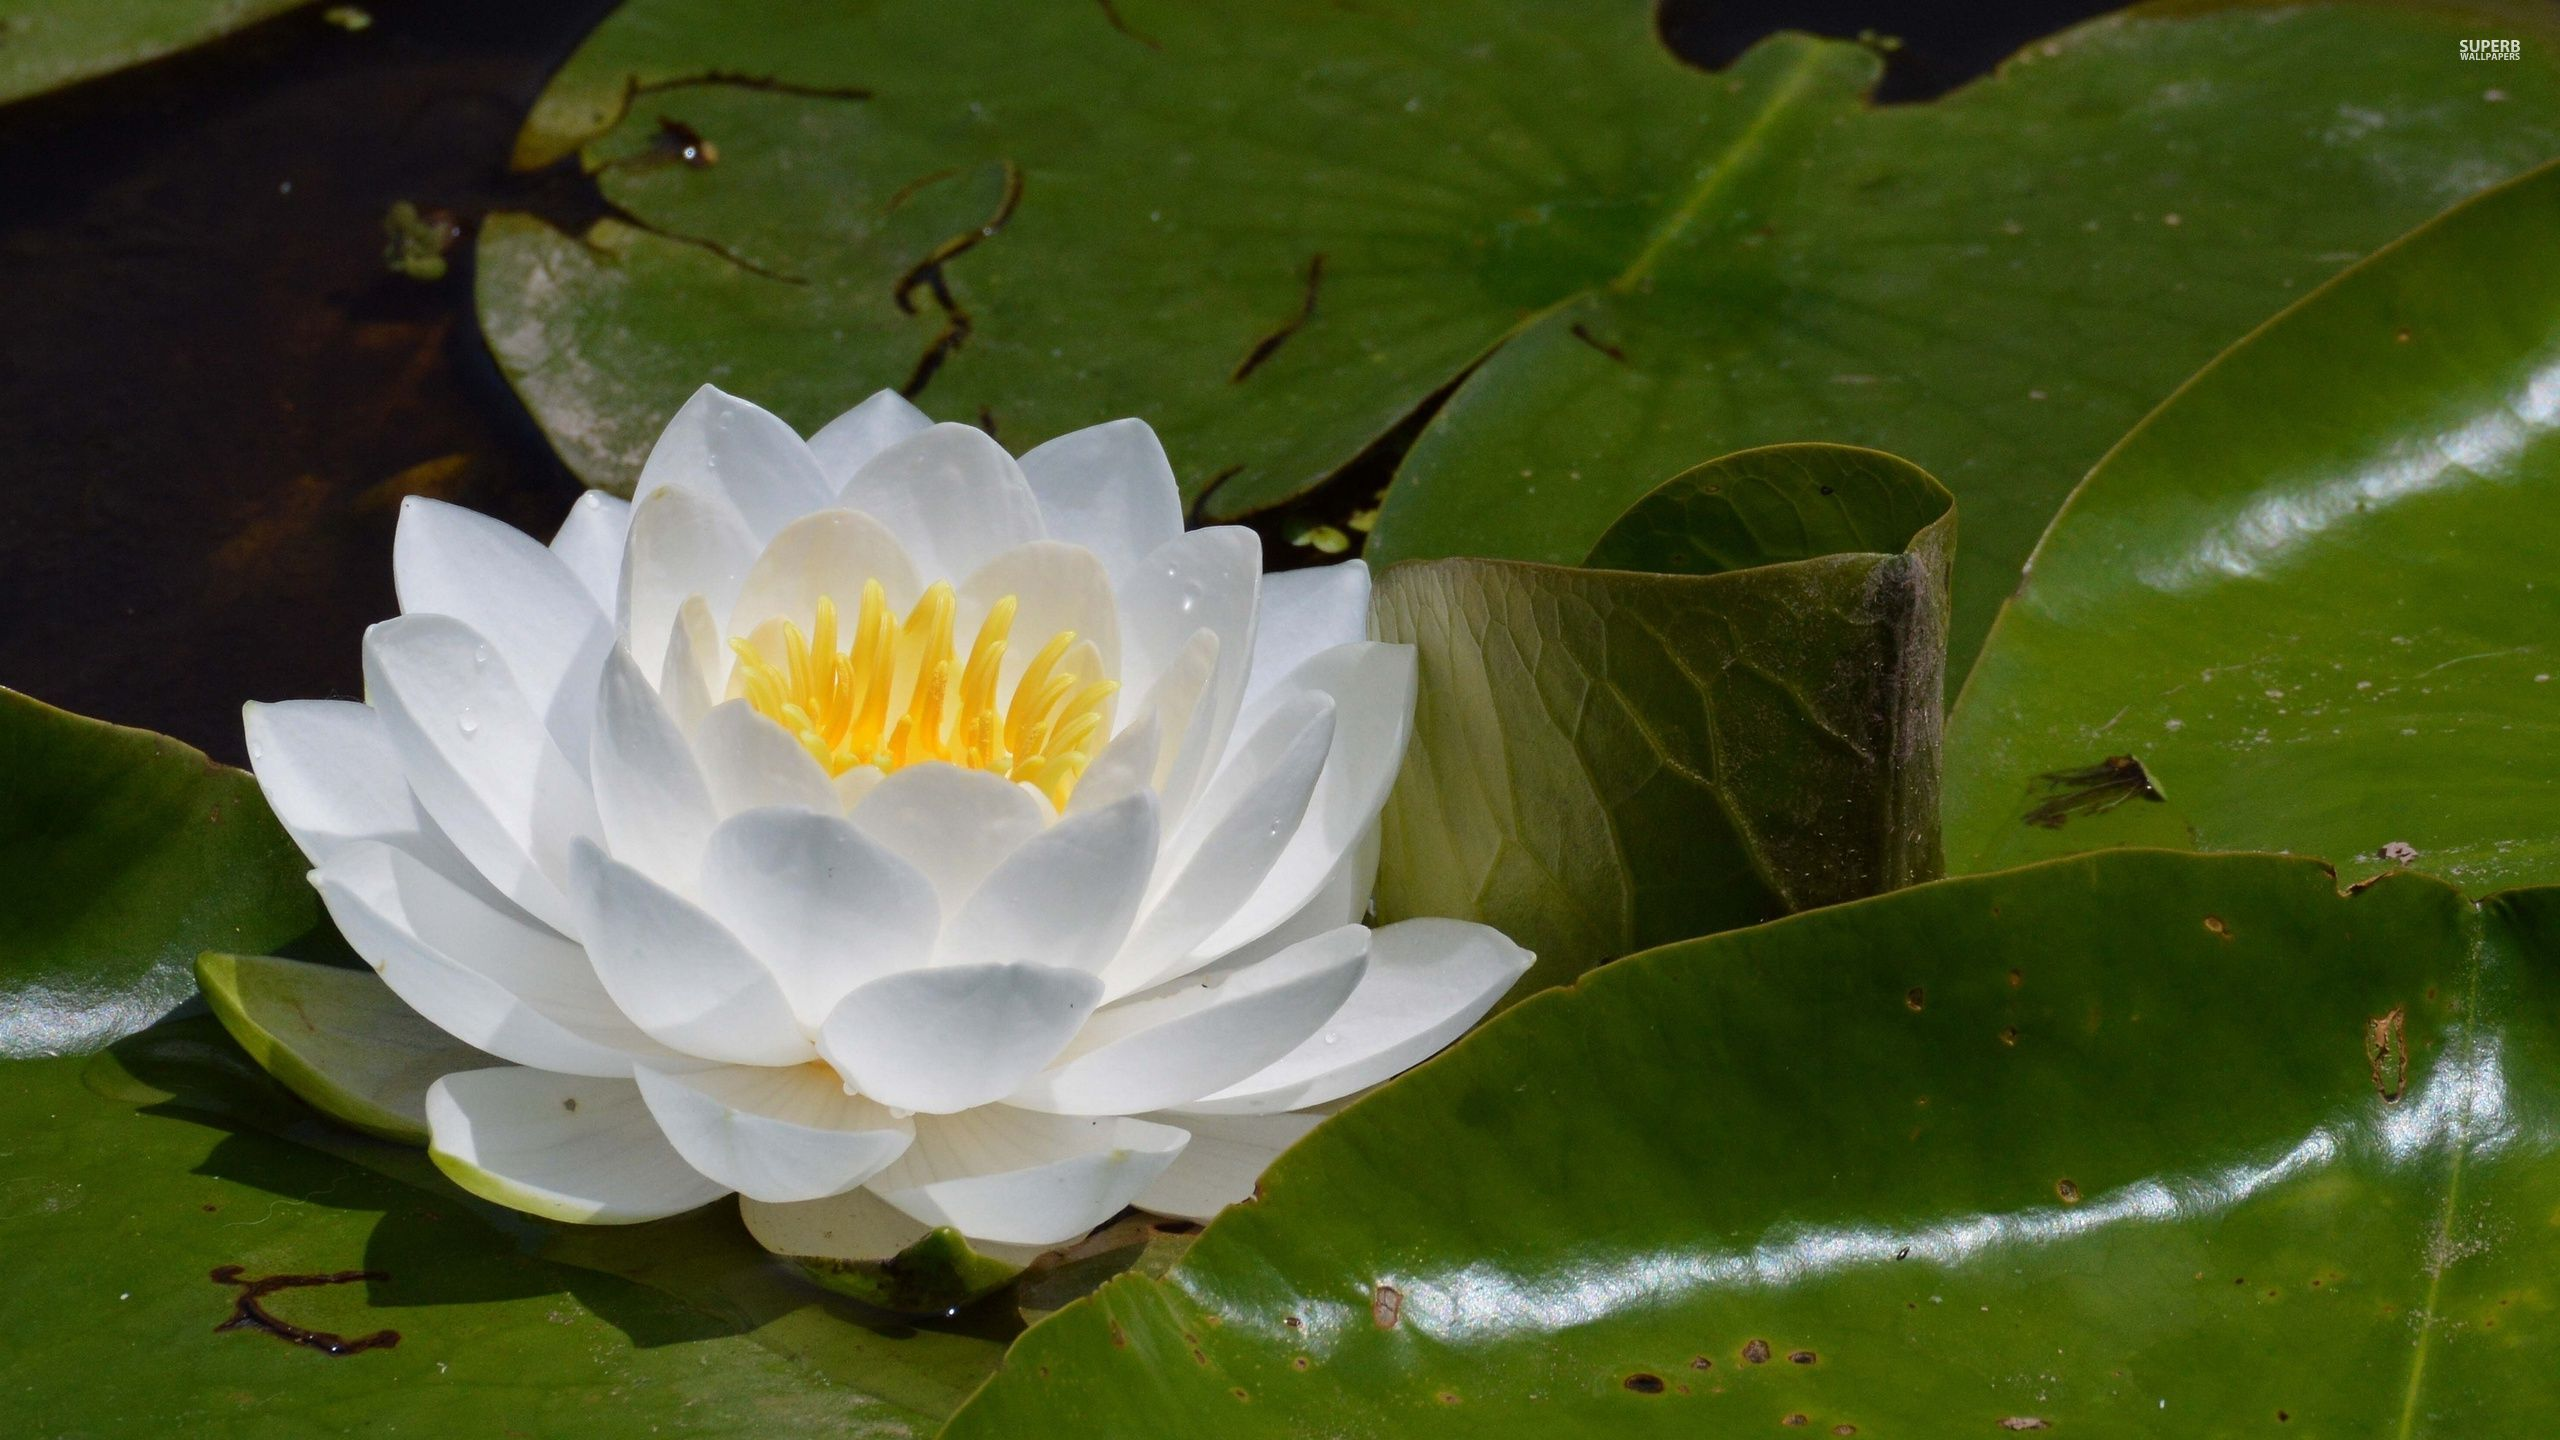 water-lily-34575-2560x1440